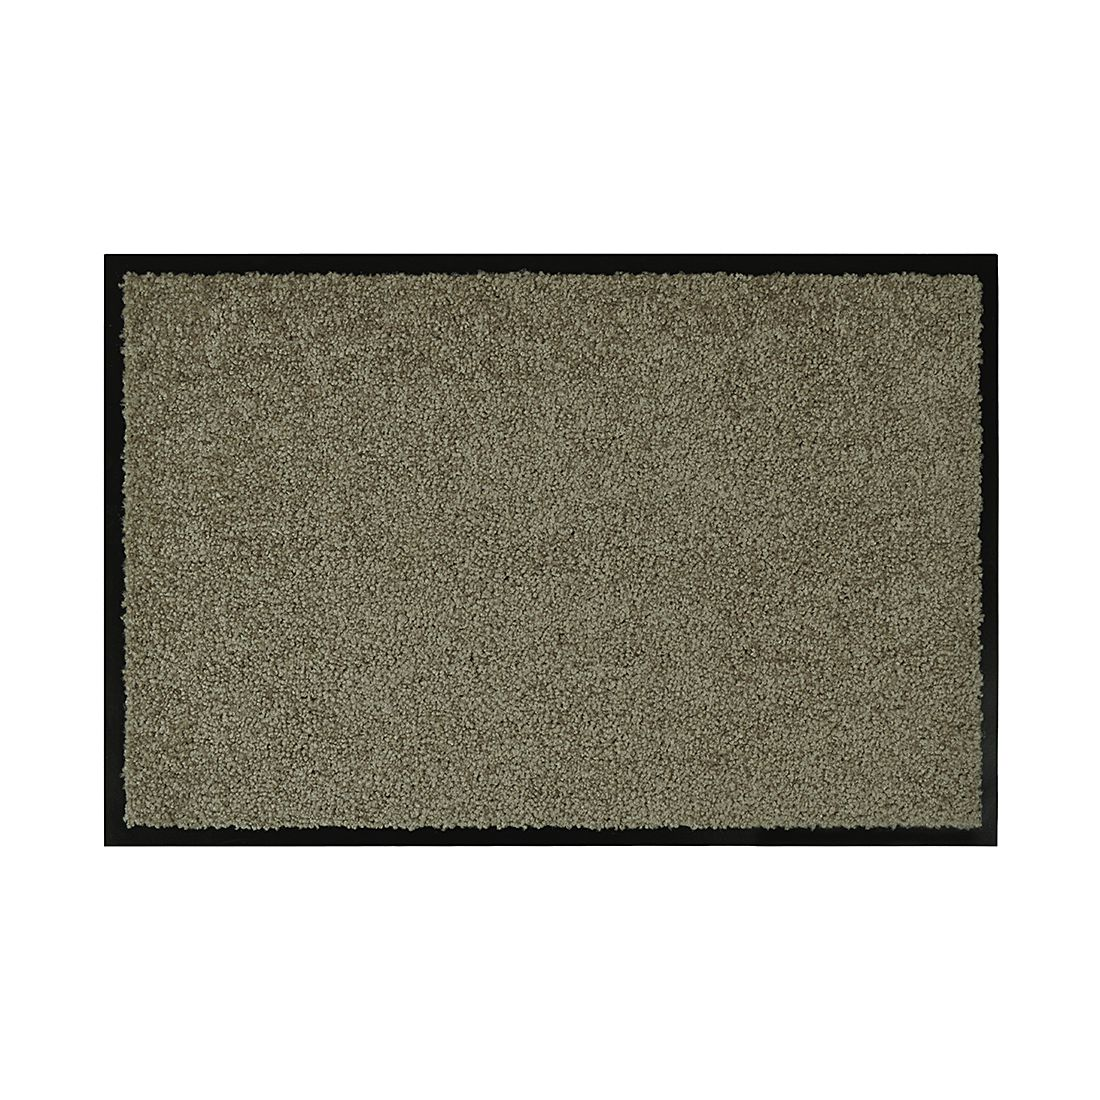 Deurmat Wash en Clean - Duifgrijs - 120x180cm, Hanse Home Collection